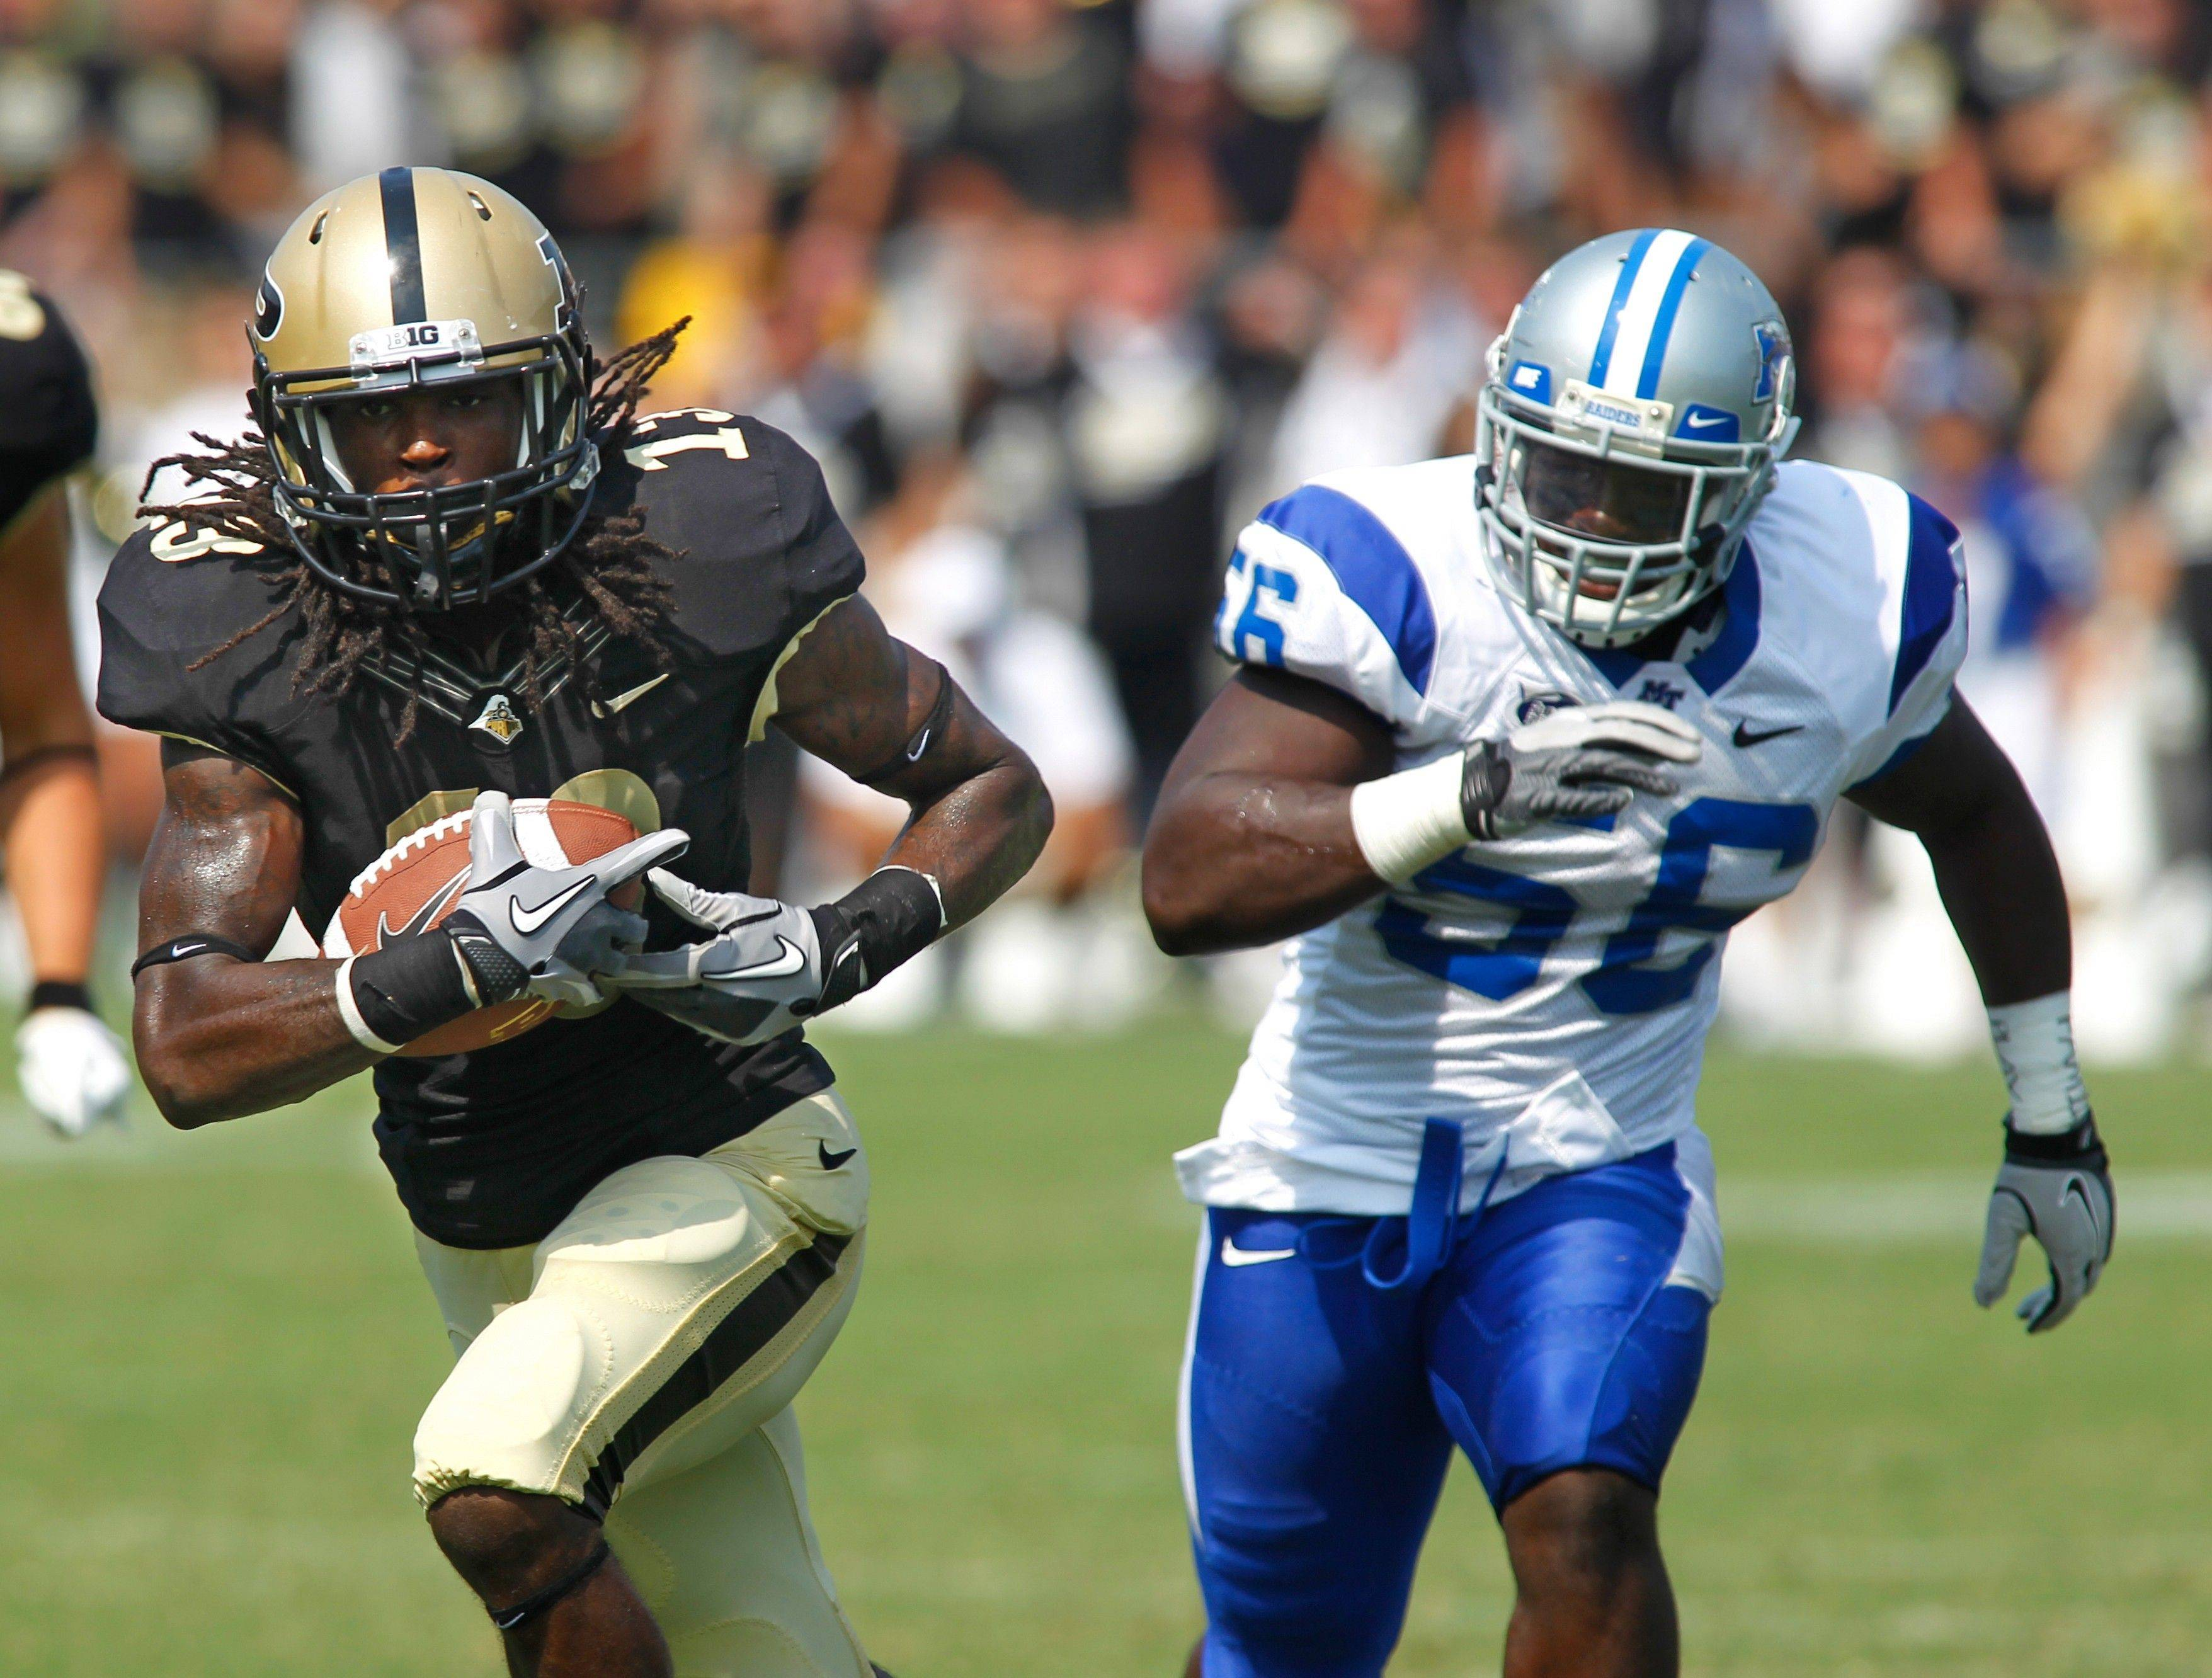 Purdue�s Antavian Edison, left, runs away from Middle Tennessee�s Norman Washington to score the game-winning touchdown late in the fourth quarter Saturday.